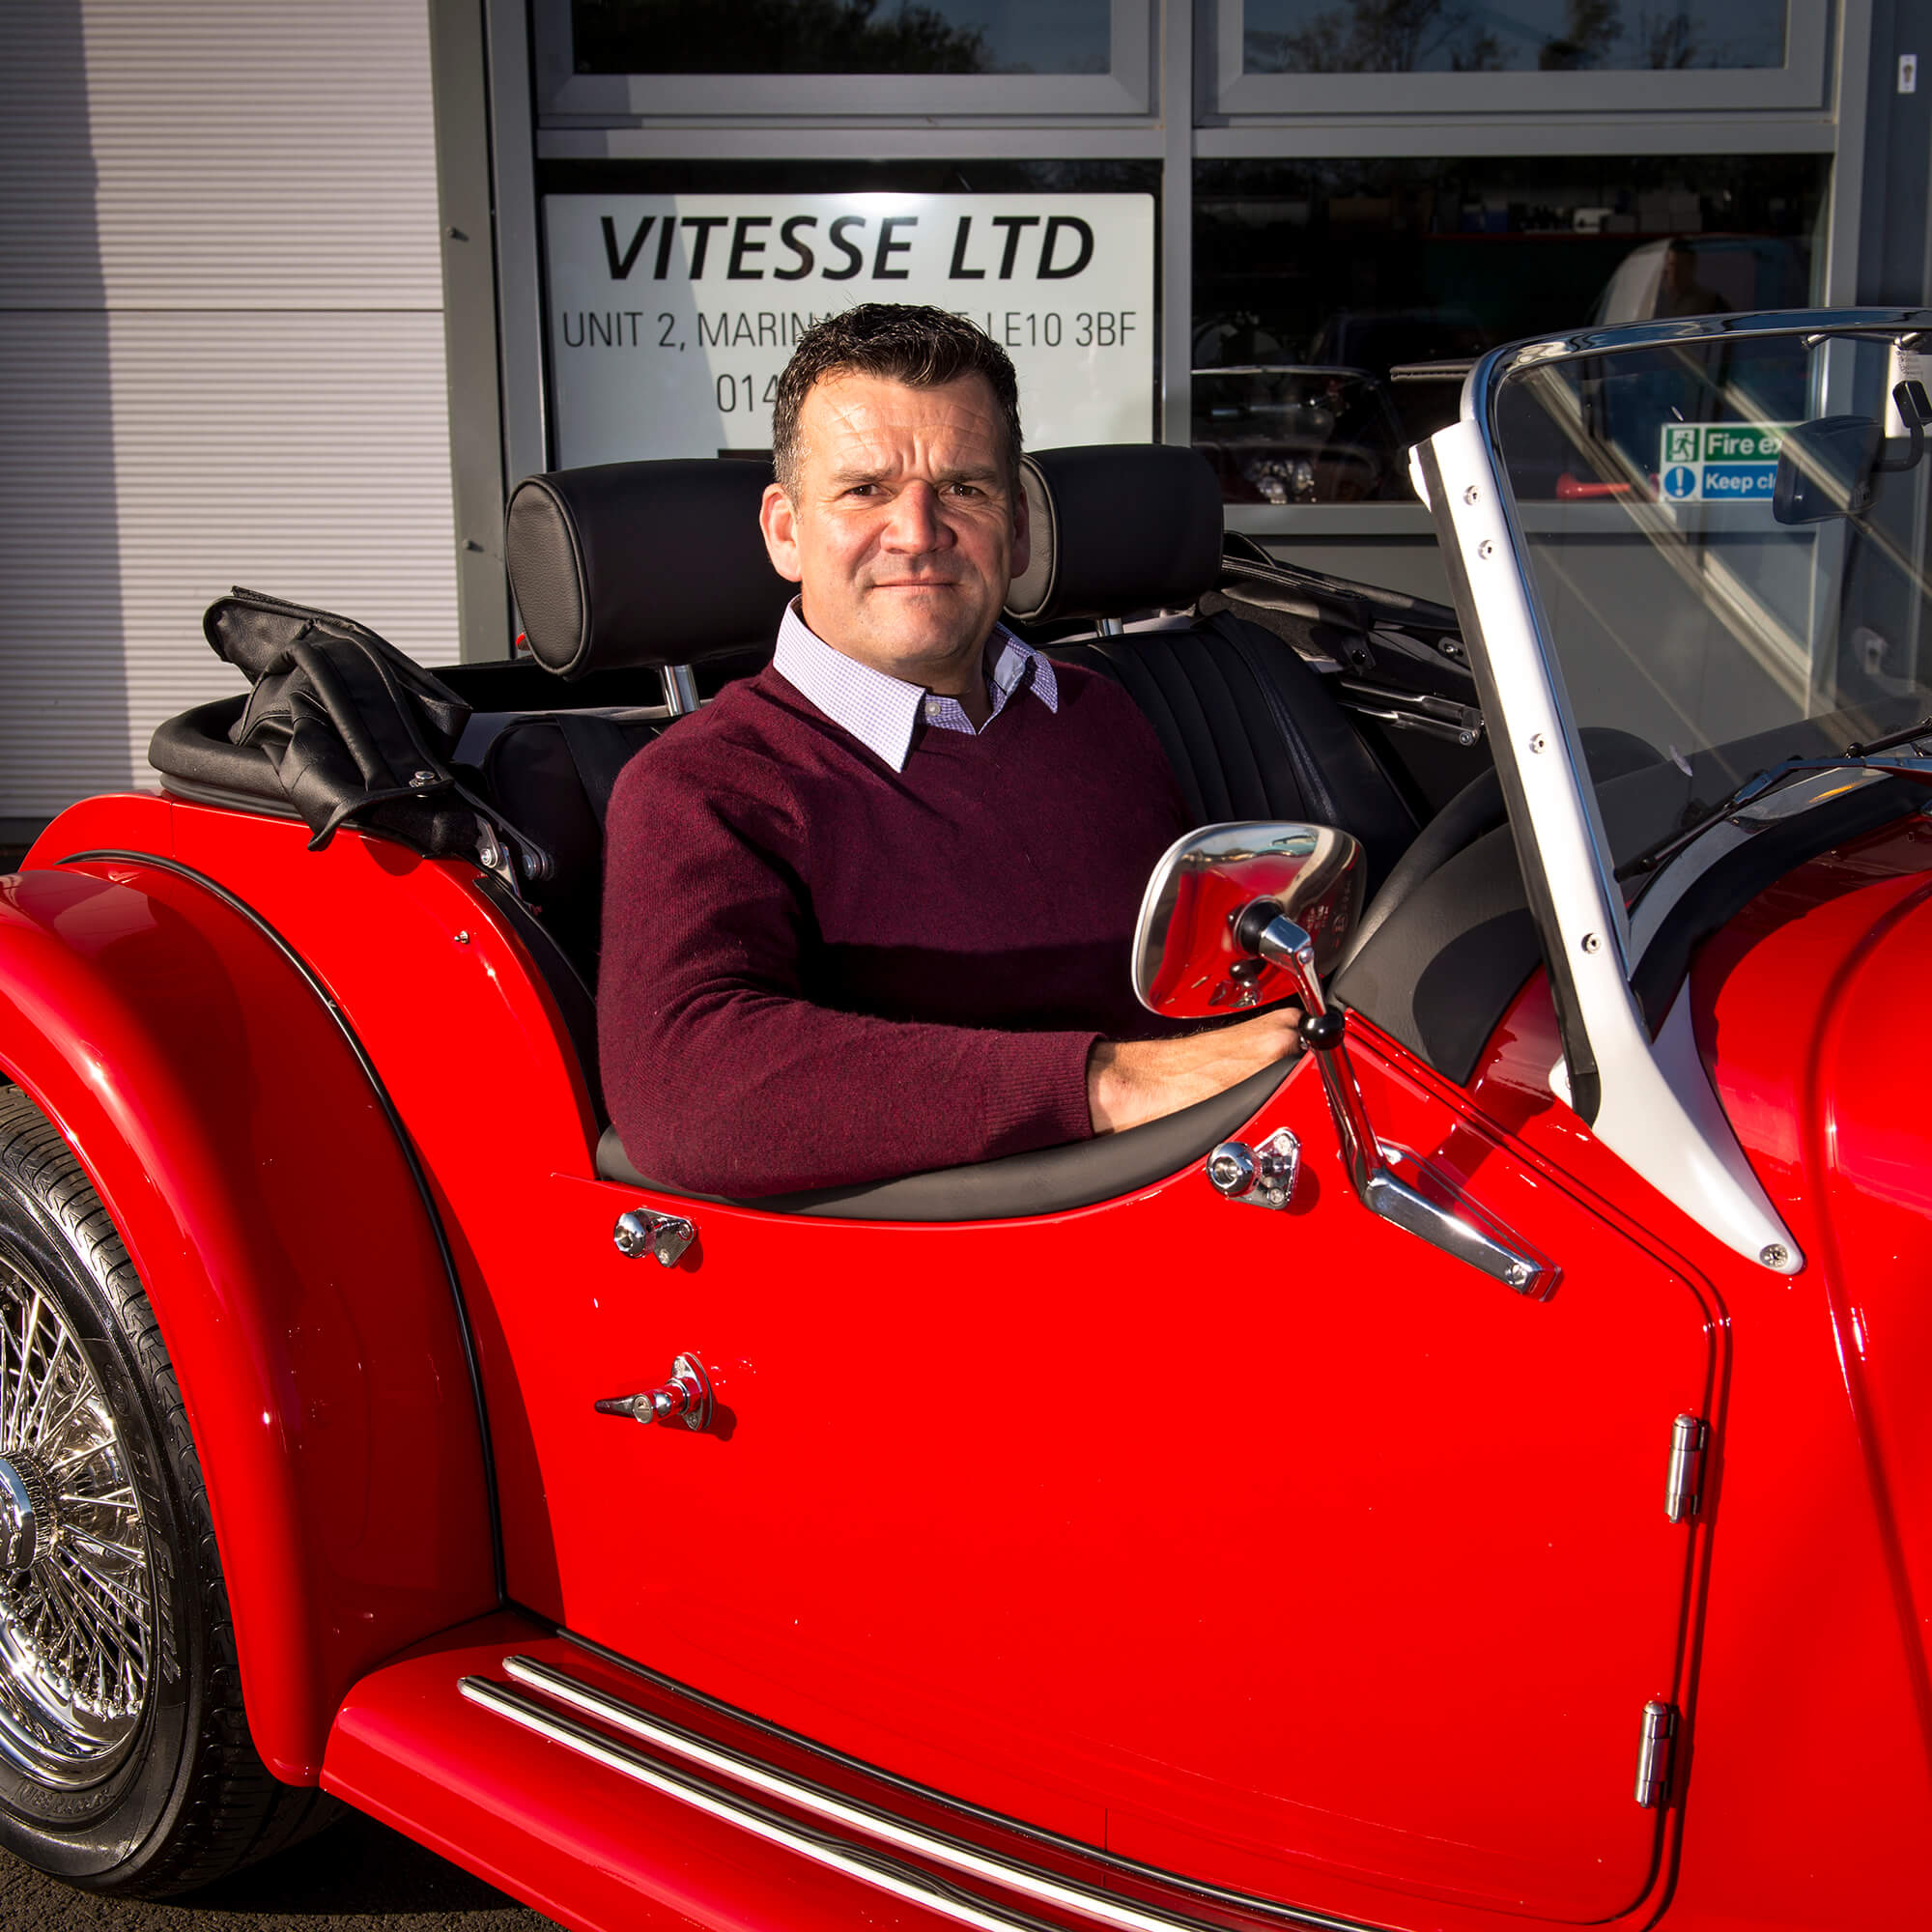 the Vitesse manager sits in a red vintage car